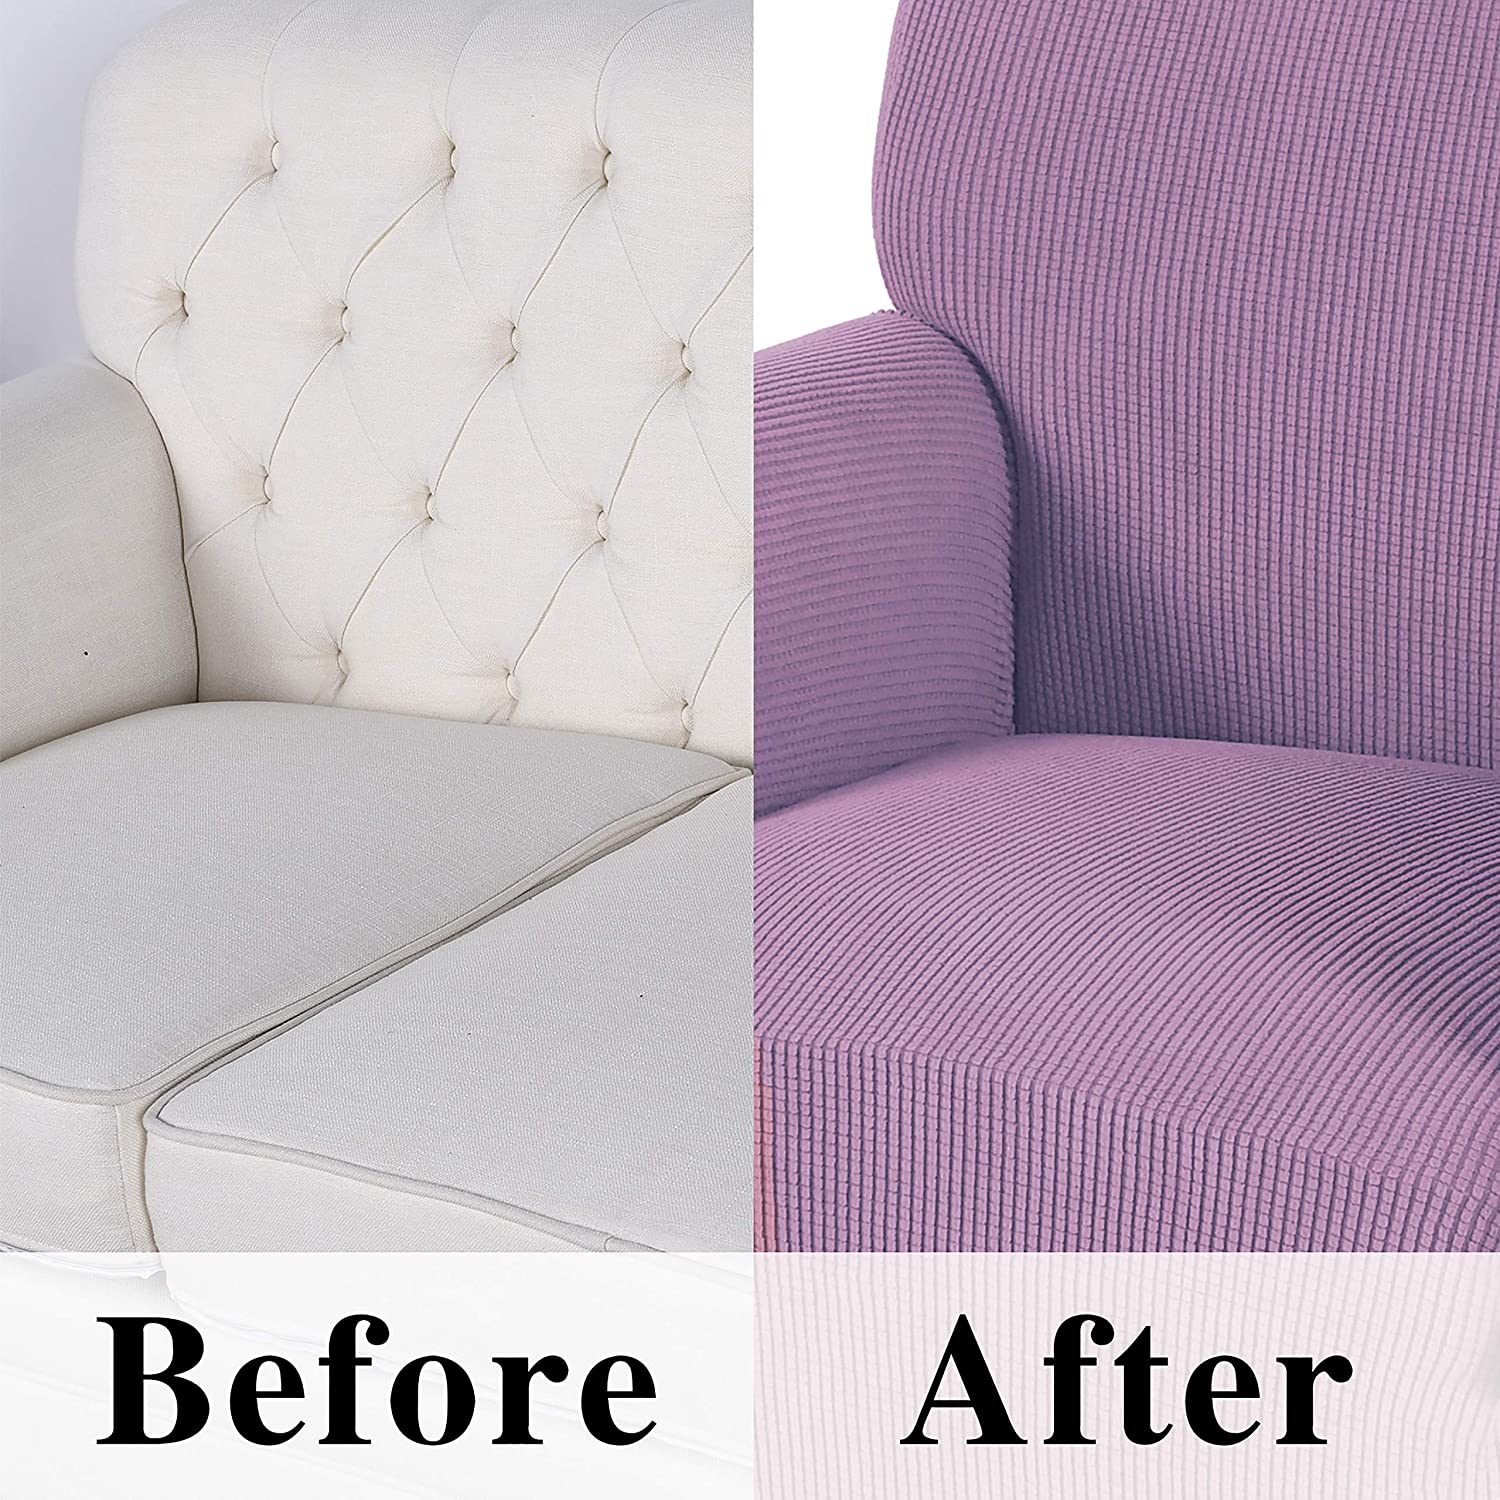 Non Slip Sofa Slipcover with Elastic Bottom Obstal Stretch Spandex Sofa Cover Cats Couch Coverings Furniture Protector for Dogs 3 Seat Couch Covers for Living Room Pets